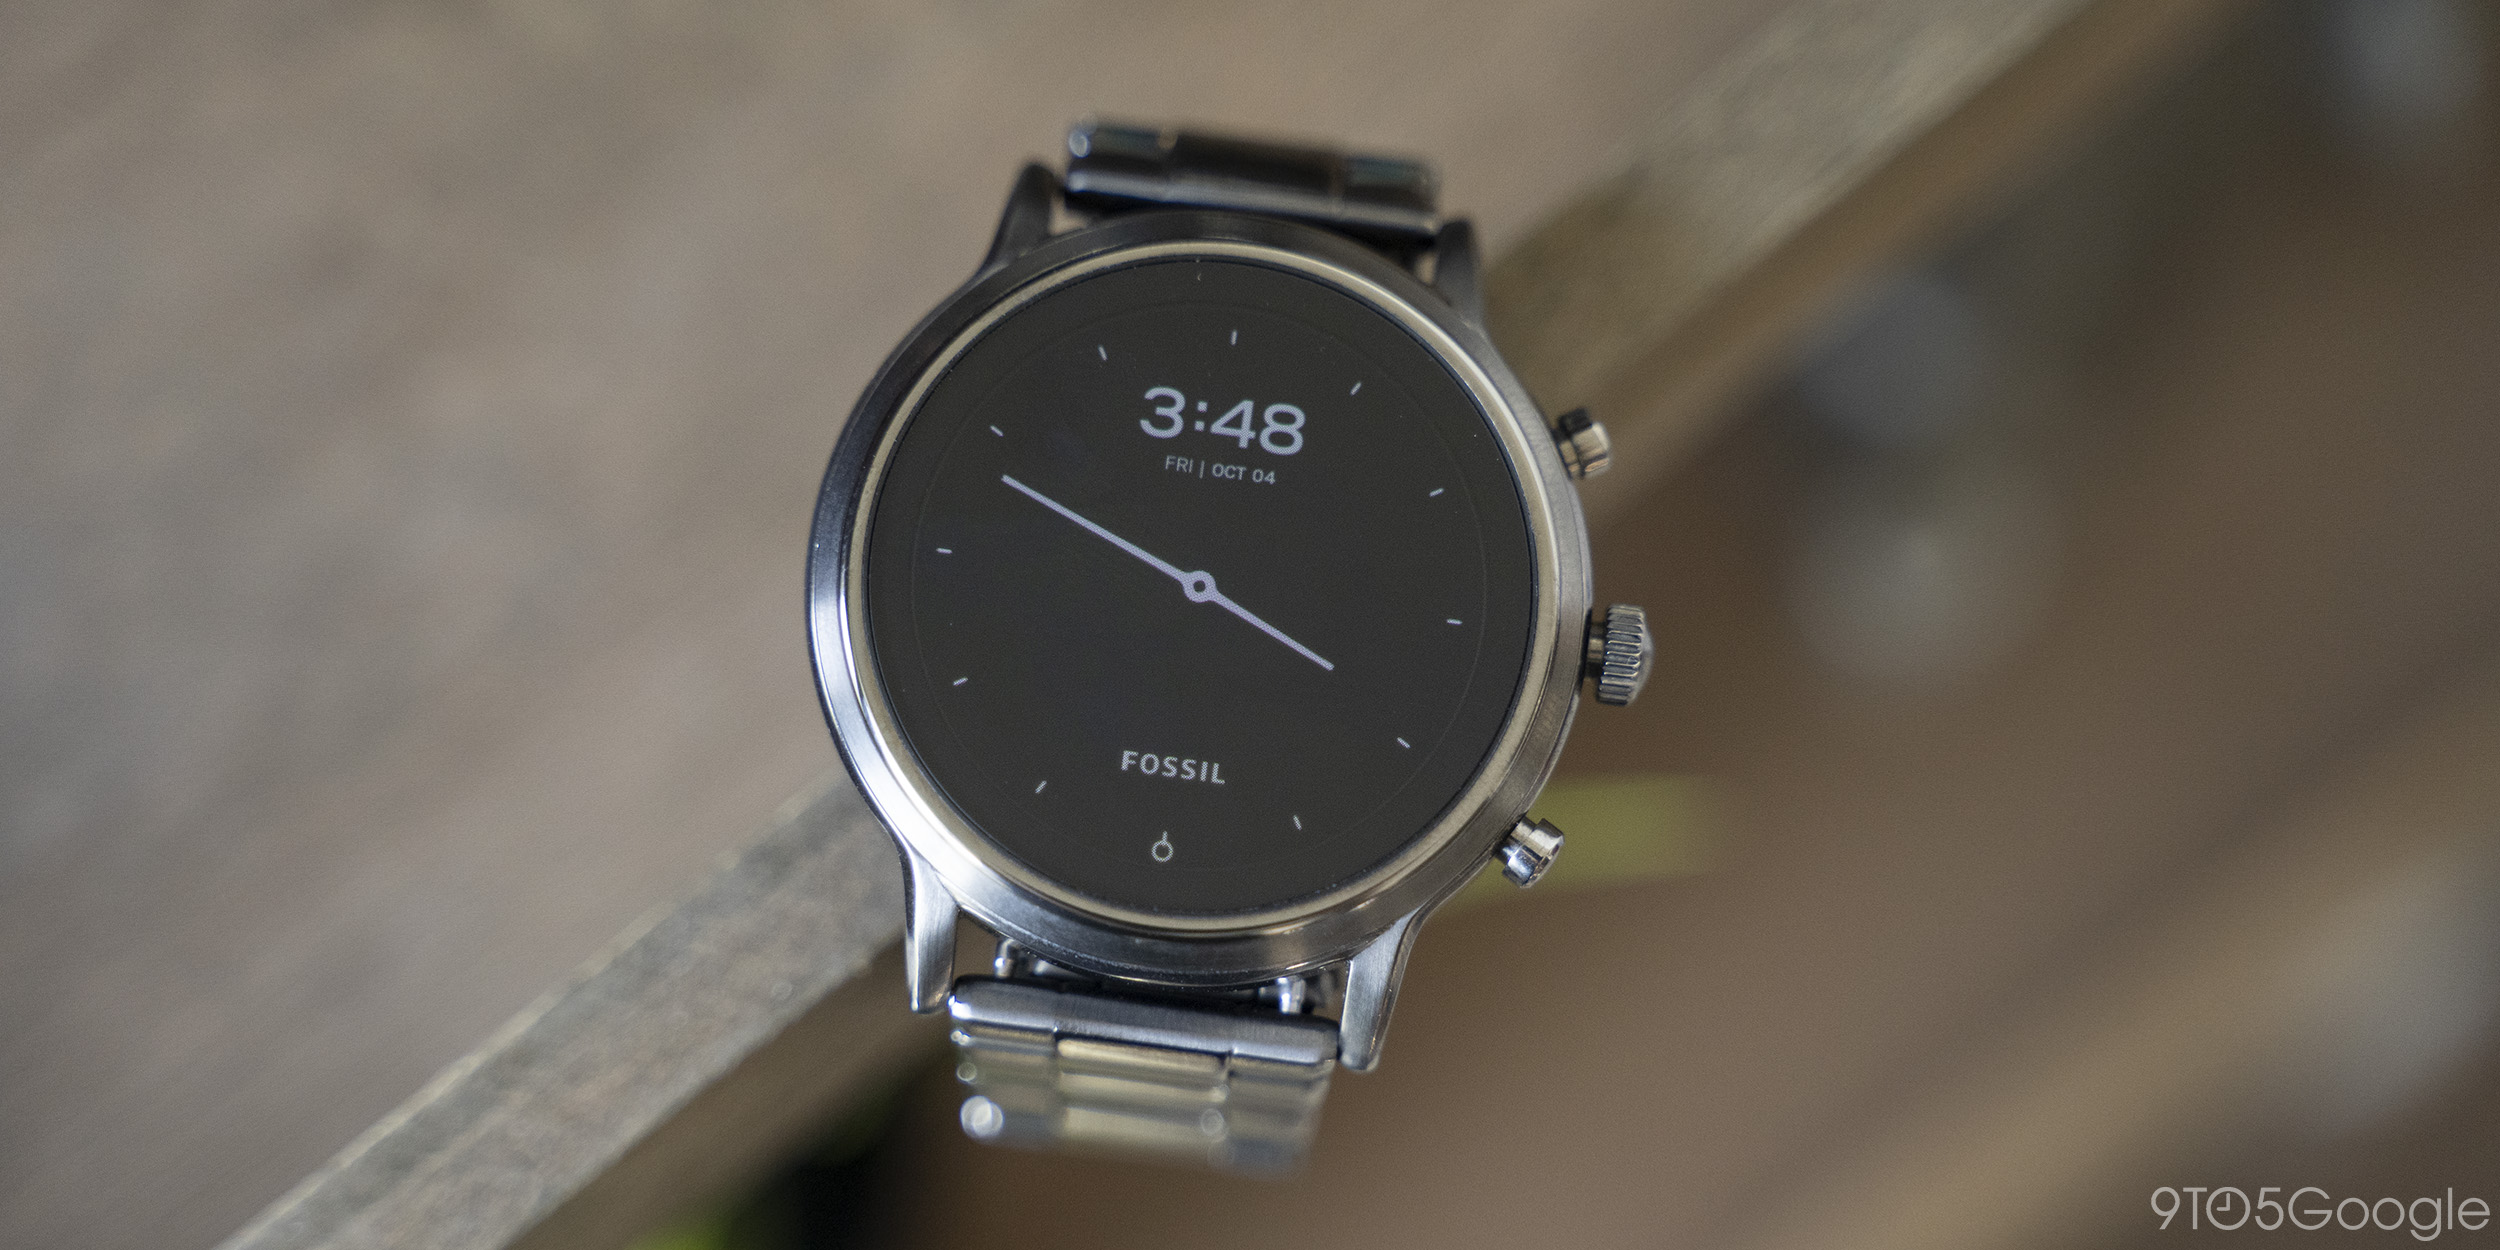 Fossil paused Wear OS H MR2 update for Gen 5 watches to 'iron out some issues'